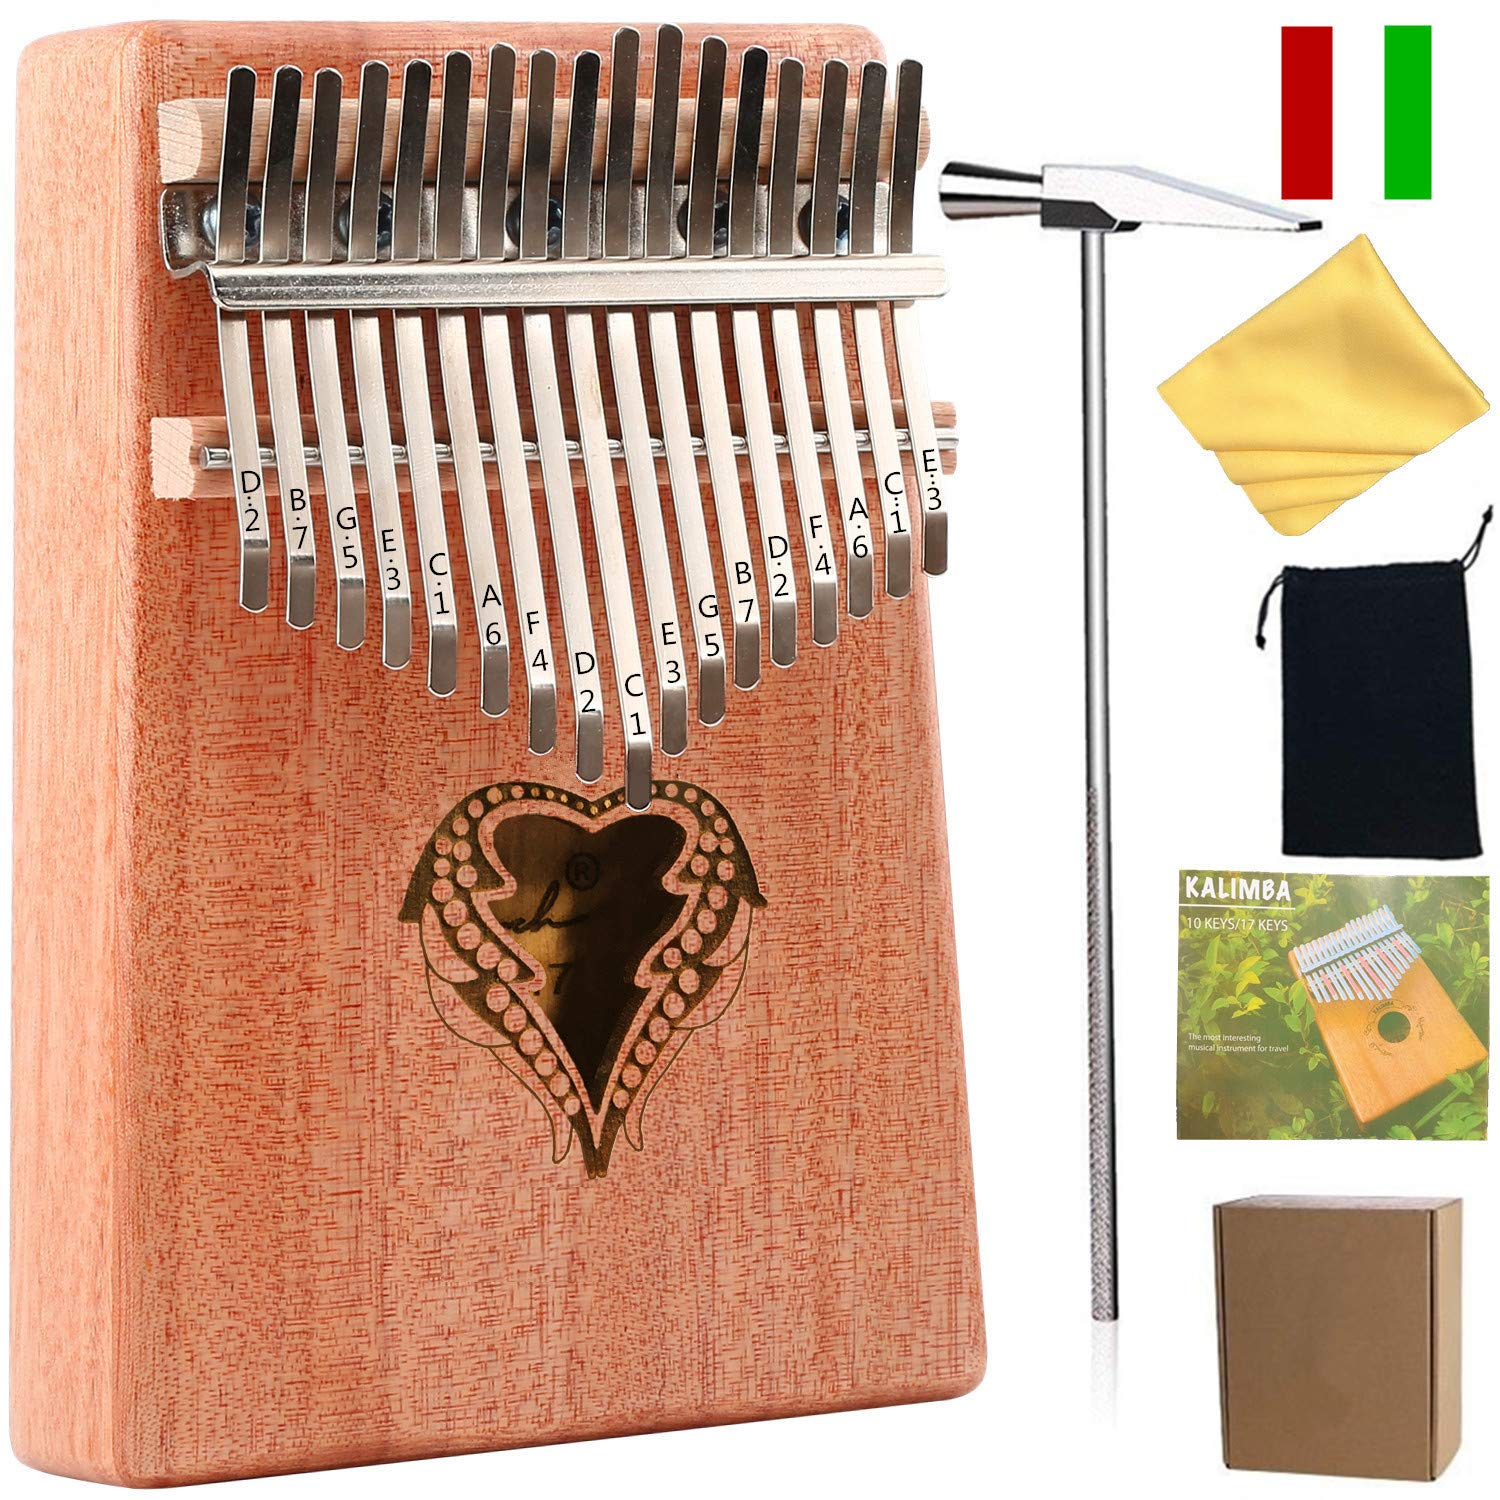 Thumb Piano Ranch Kalimba 17 keys Finger Mbira with Online 6 Free Lessons Solid Wood Mahogany Christmas Gifts with Bag/Carved Notation/Tune Hammer - Love Heart by Ranch (Image #1)